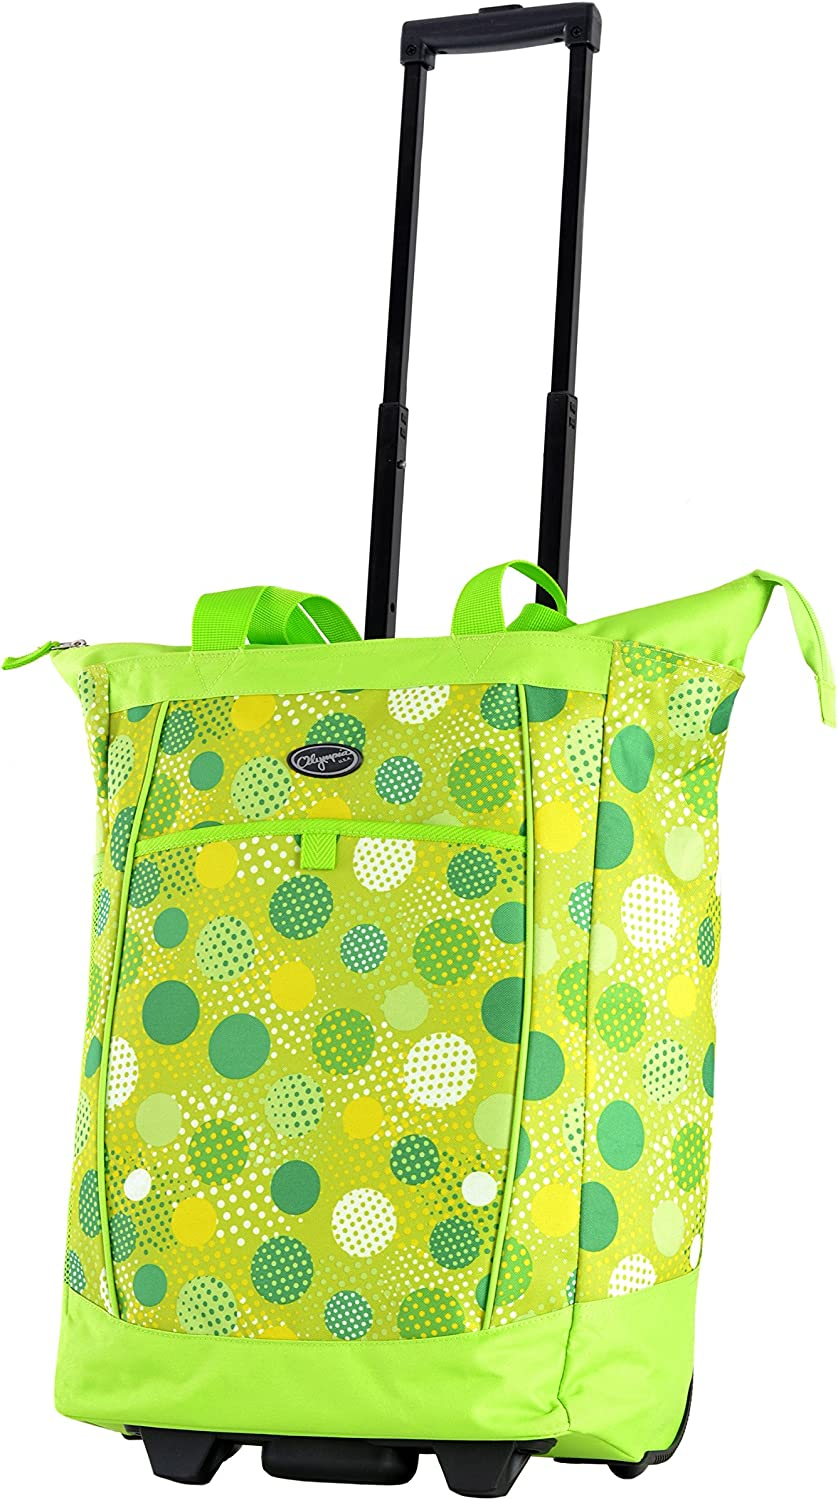 Olympia Fashion Rolling Shopper Tote - Lime Polka Dots, 2300 cu. in.